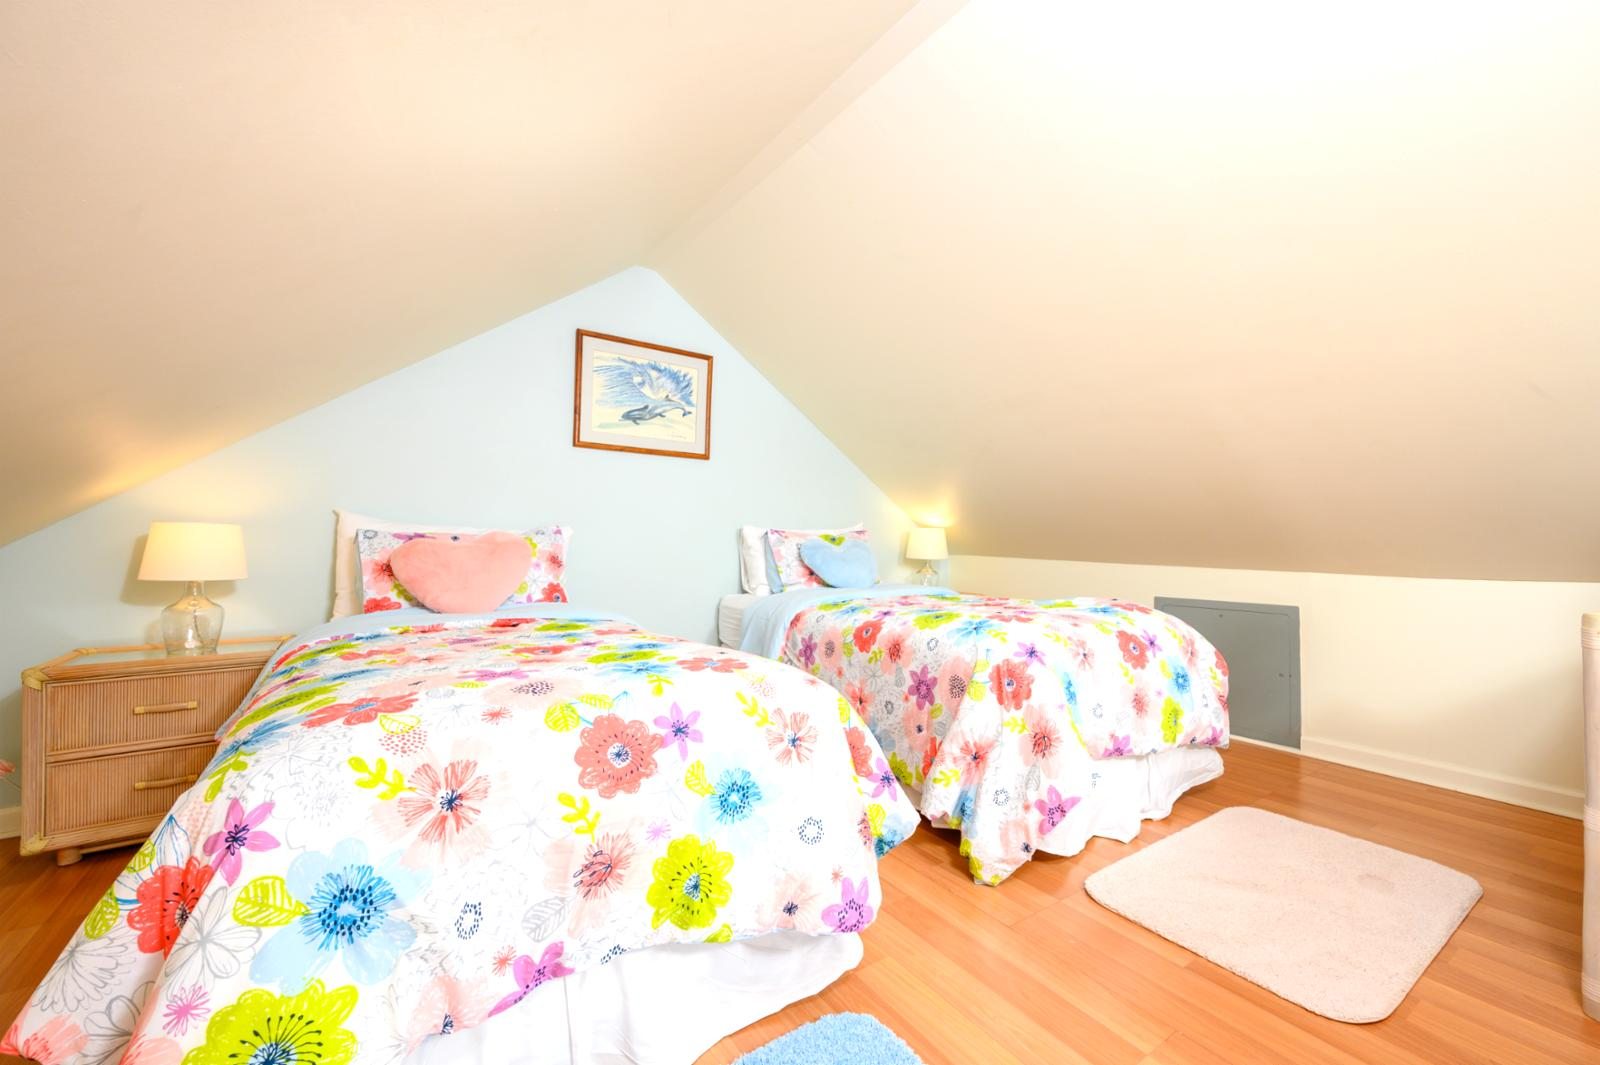 2 twin bed configuration, perfect for kids!